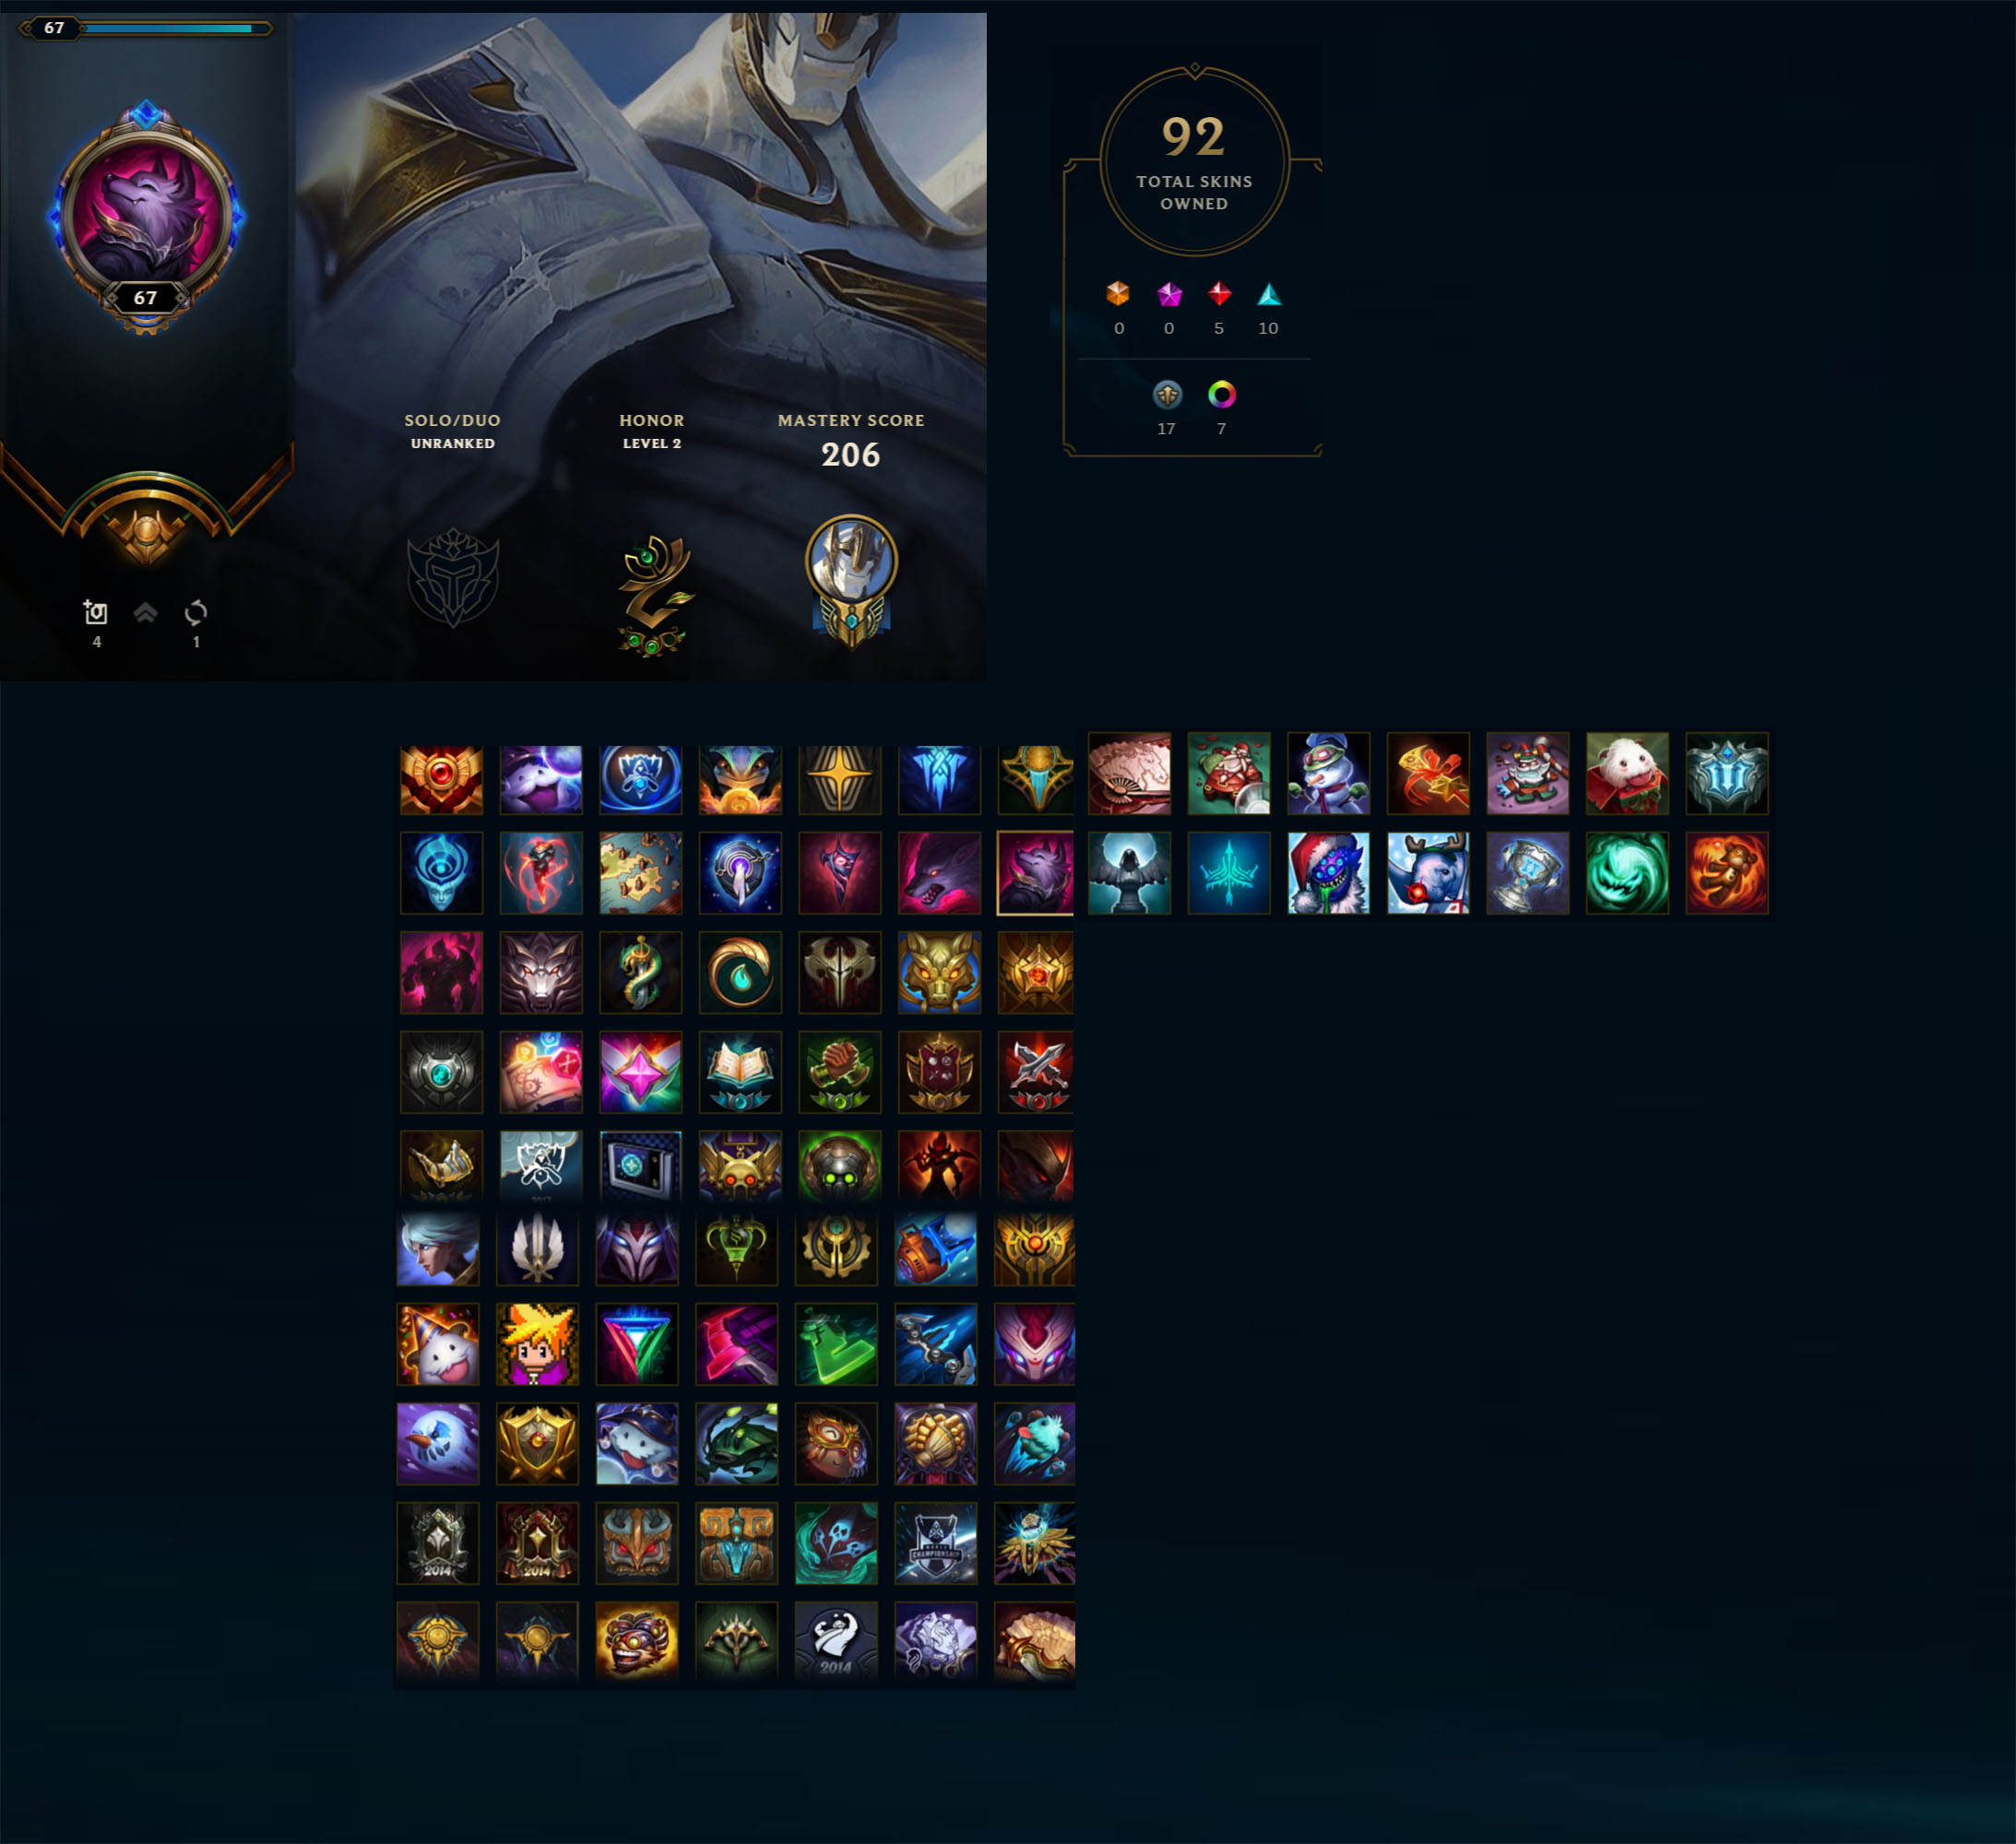 League of Legends Account for Sale: Unranked | 146 Champions | 92 Skins | Victorious Oriana | Victorious Graves